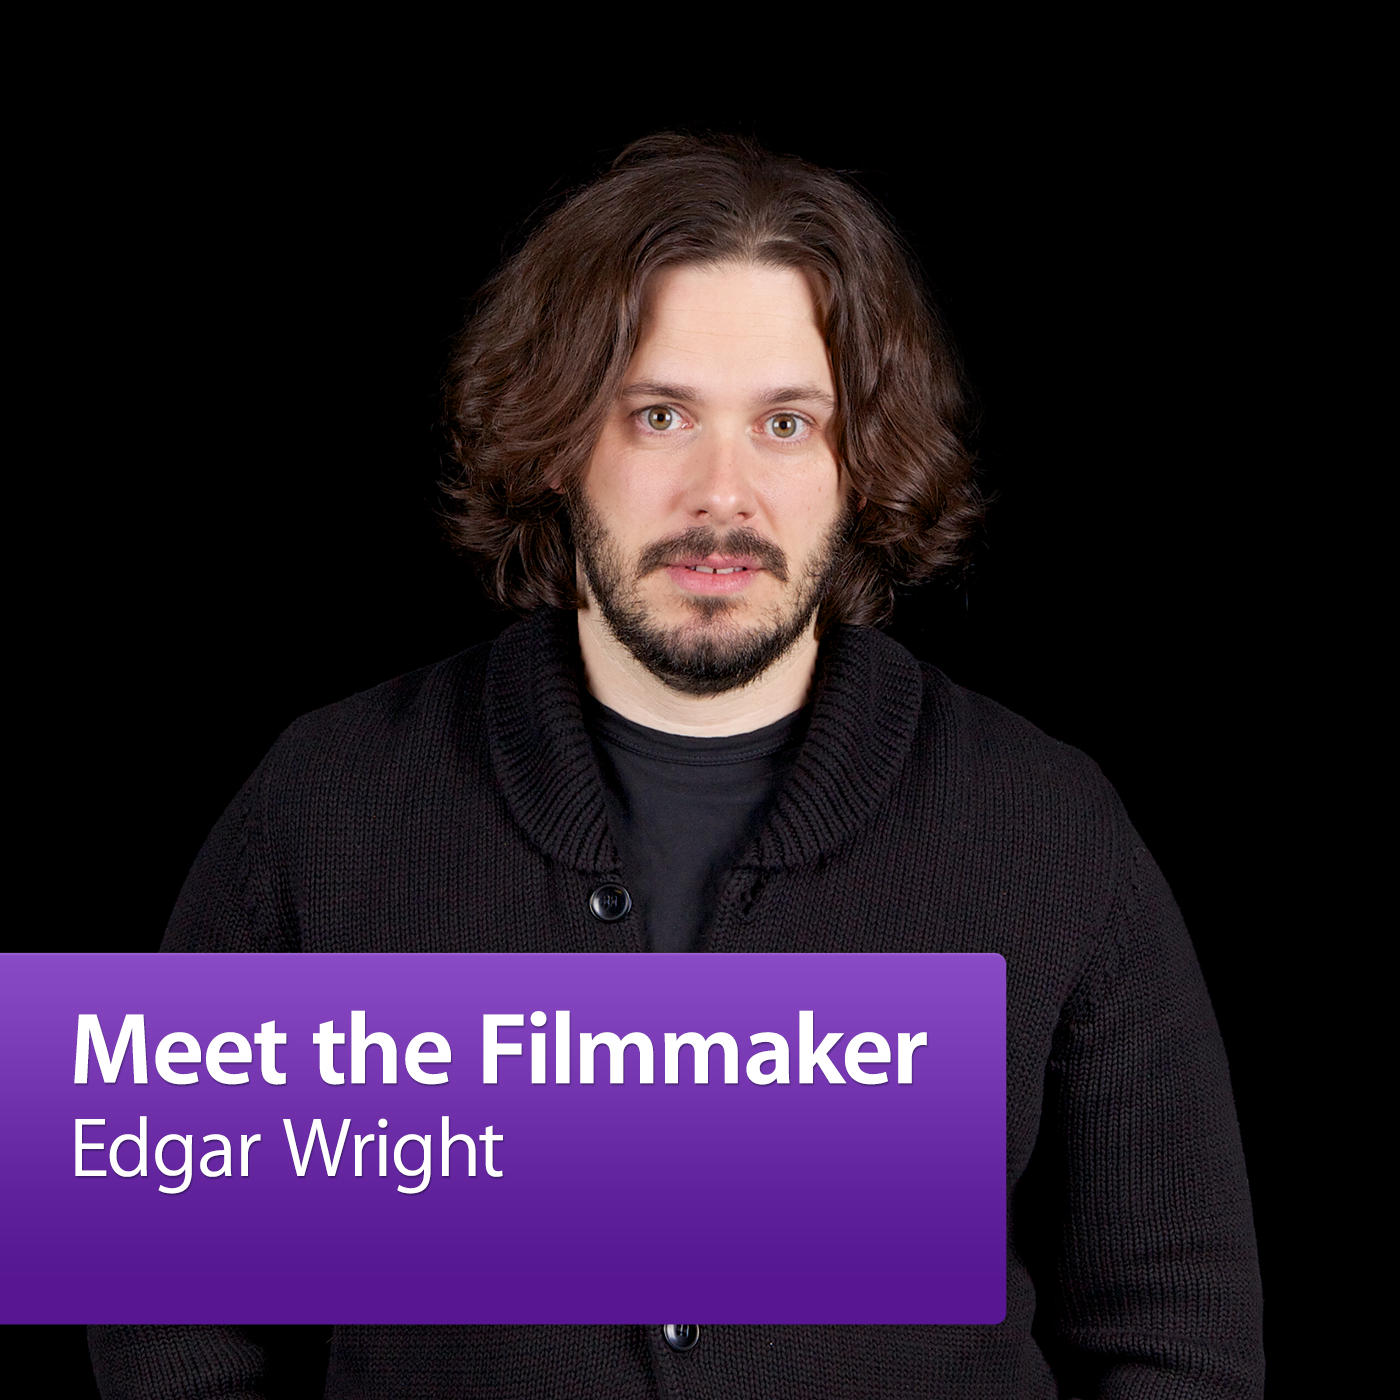 Edgar Wright: Meet the Filmmaker